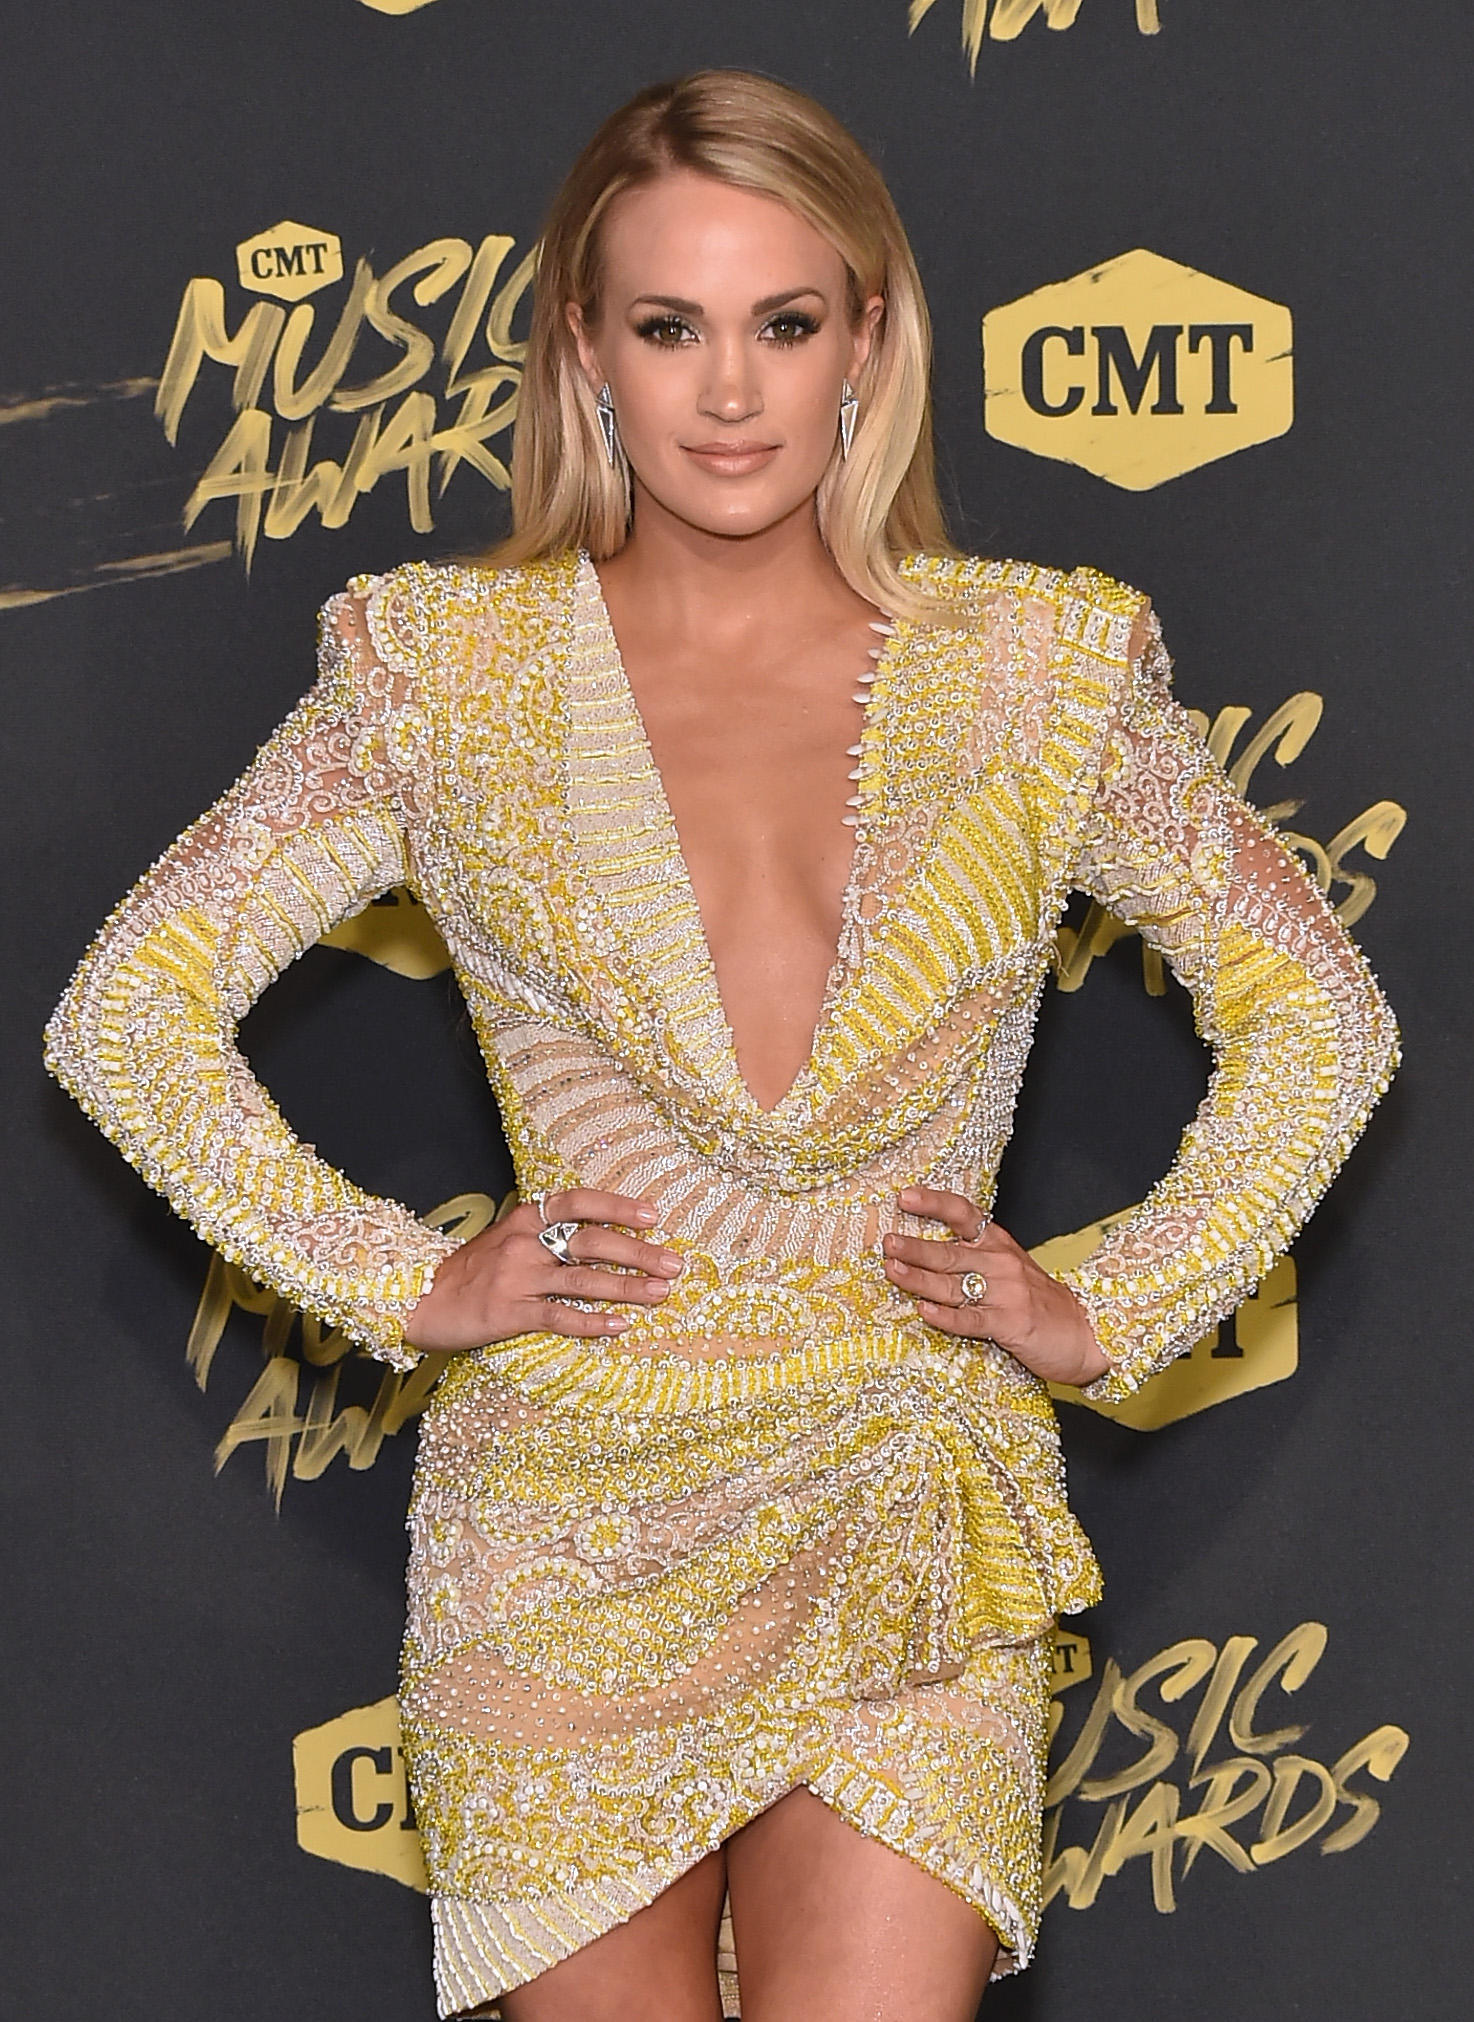 Carrie Underwood attends the 2018 CMT Music Awards at Bridgestone Arena on June 6, 2018, in Nashville, Tennessee. (Getty Images)